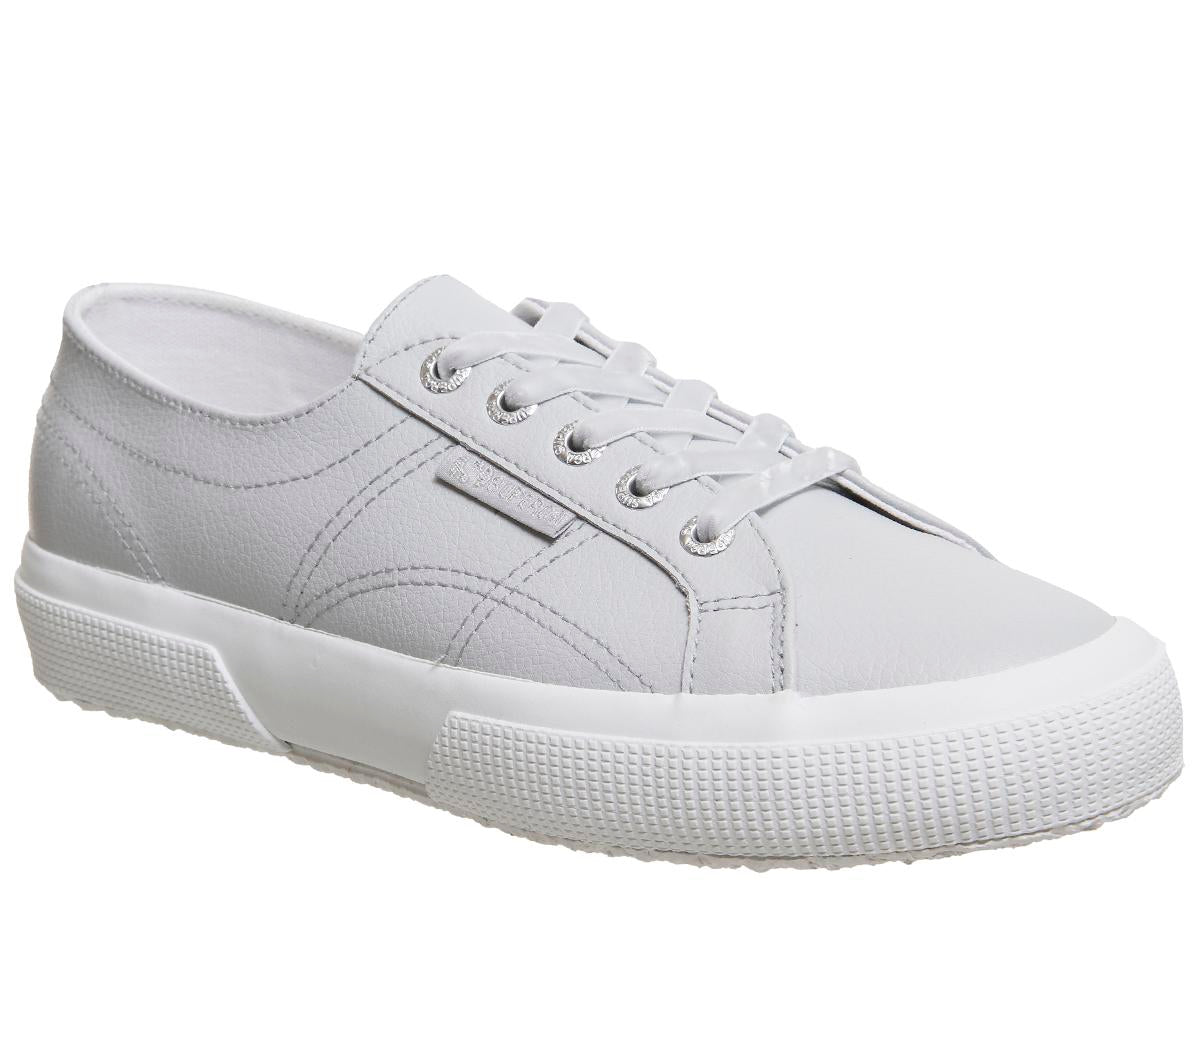 Womens Superga 2750 Glacier Grey Leather